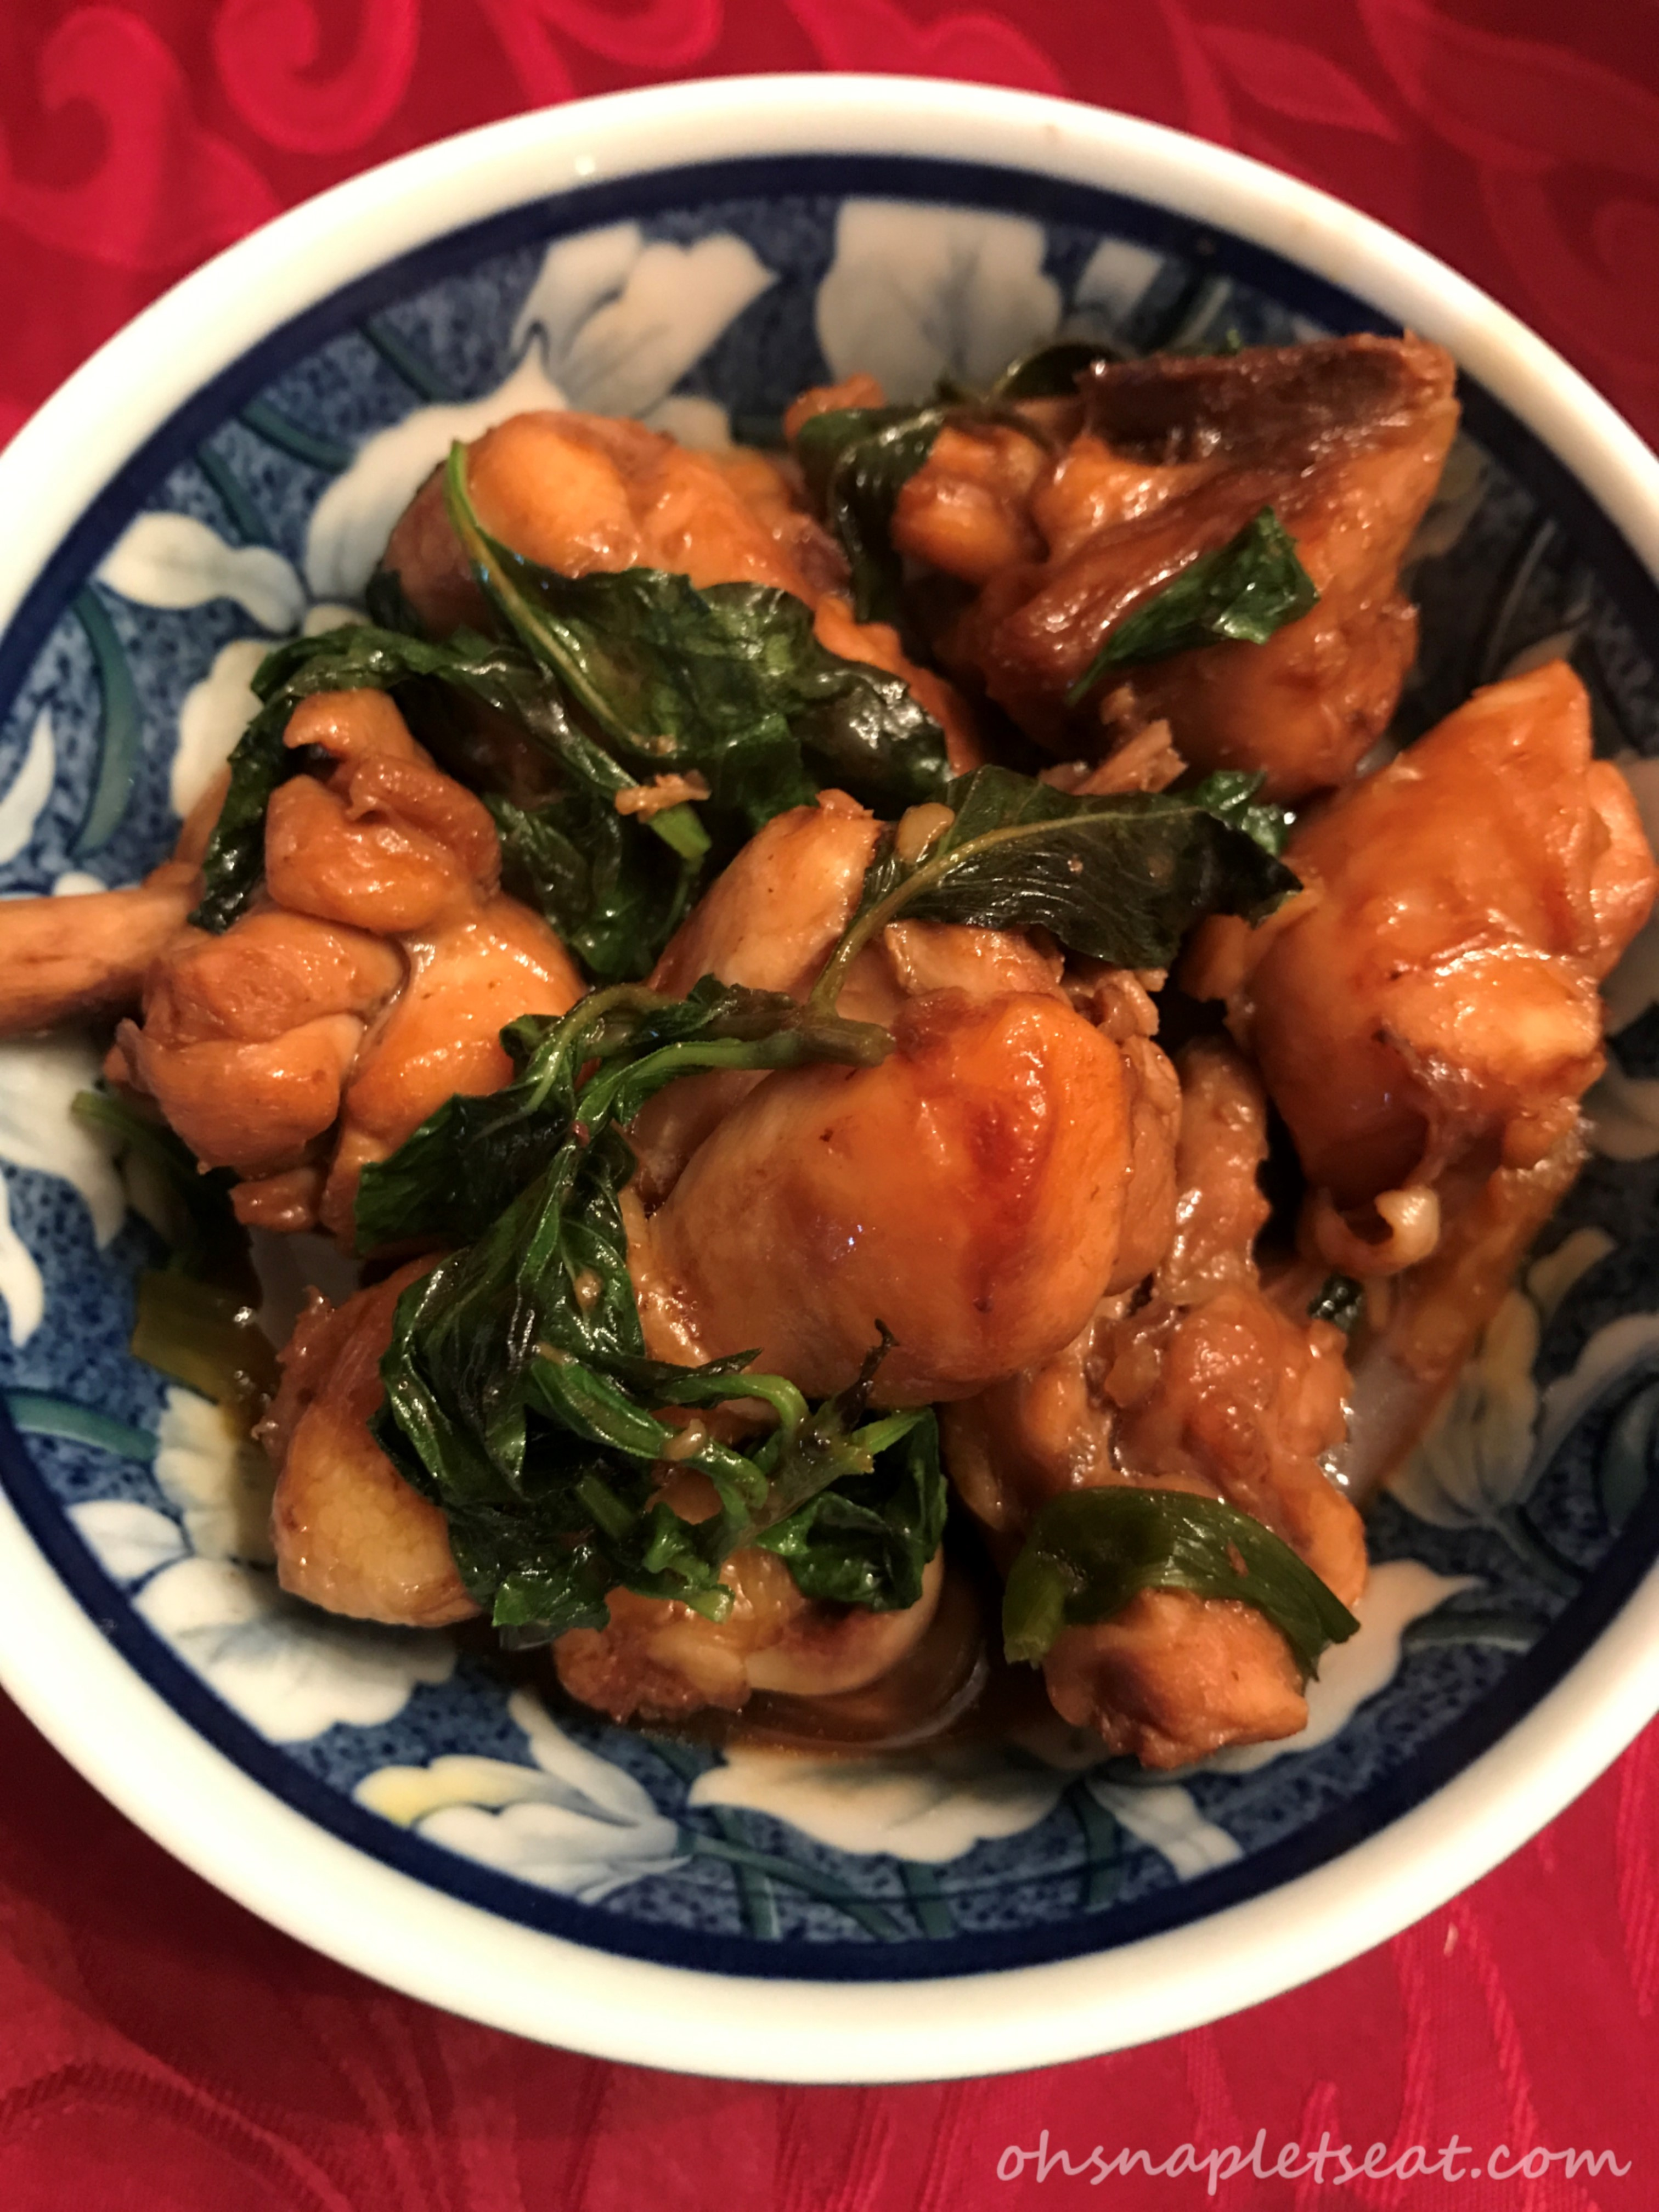 Taiwanese Three Cup Chicken (Paleo and Gluten Free Options)